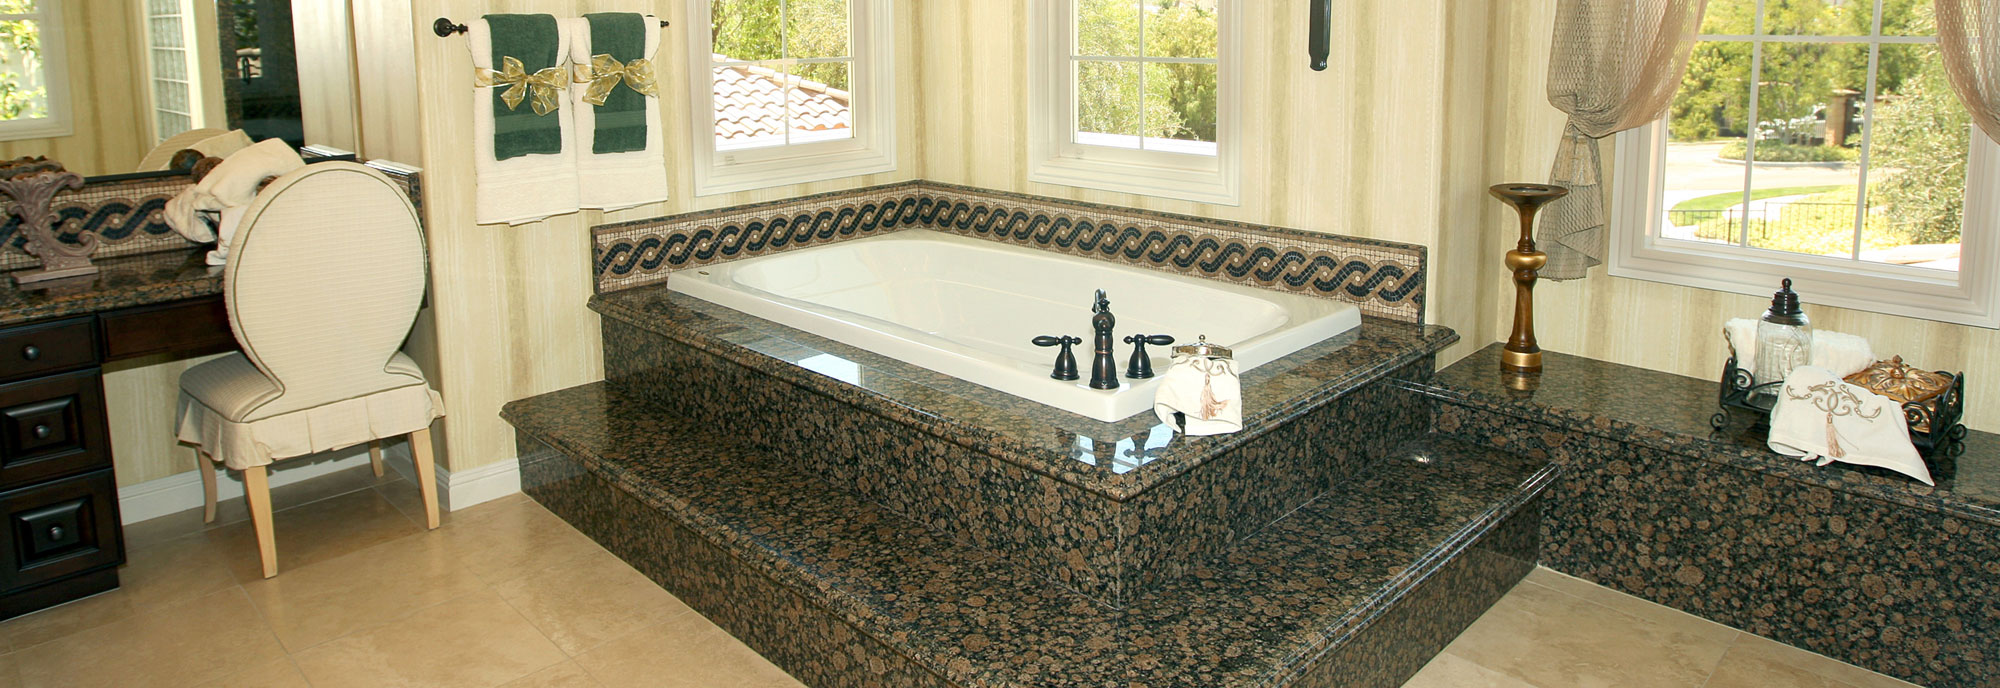 Therapy Whirlpool Tub and Air Jet Bathing Systems   IzziBath.com